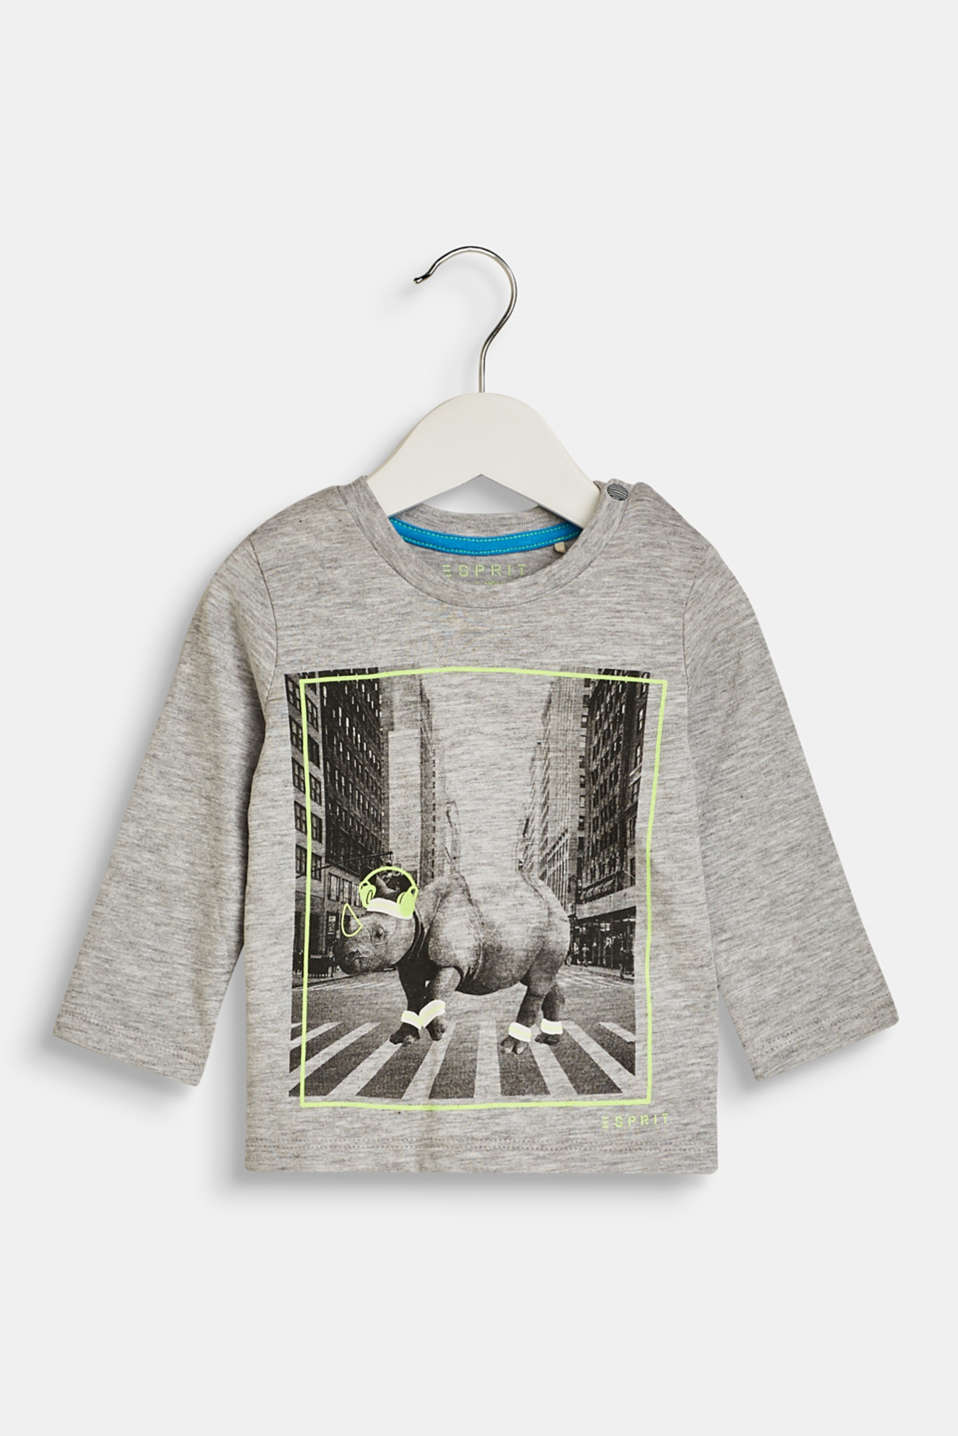 Esprit - Long sleeve top with a photo print, 100% cotton